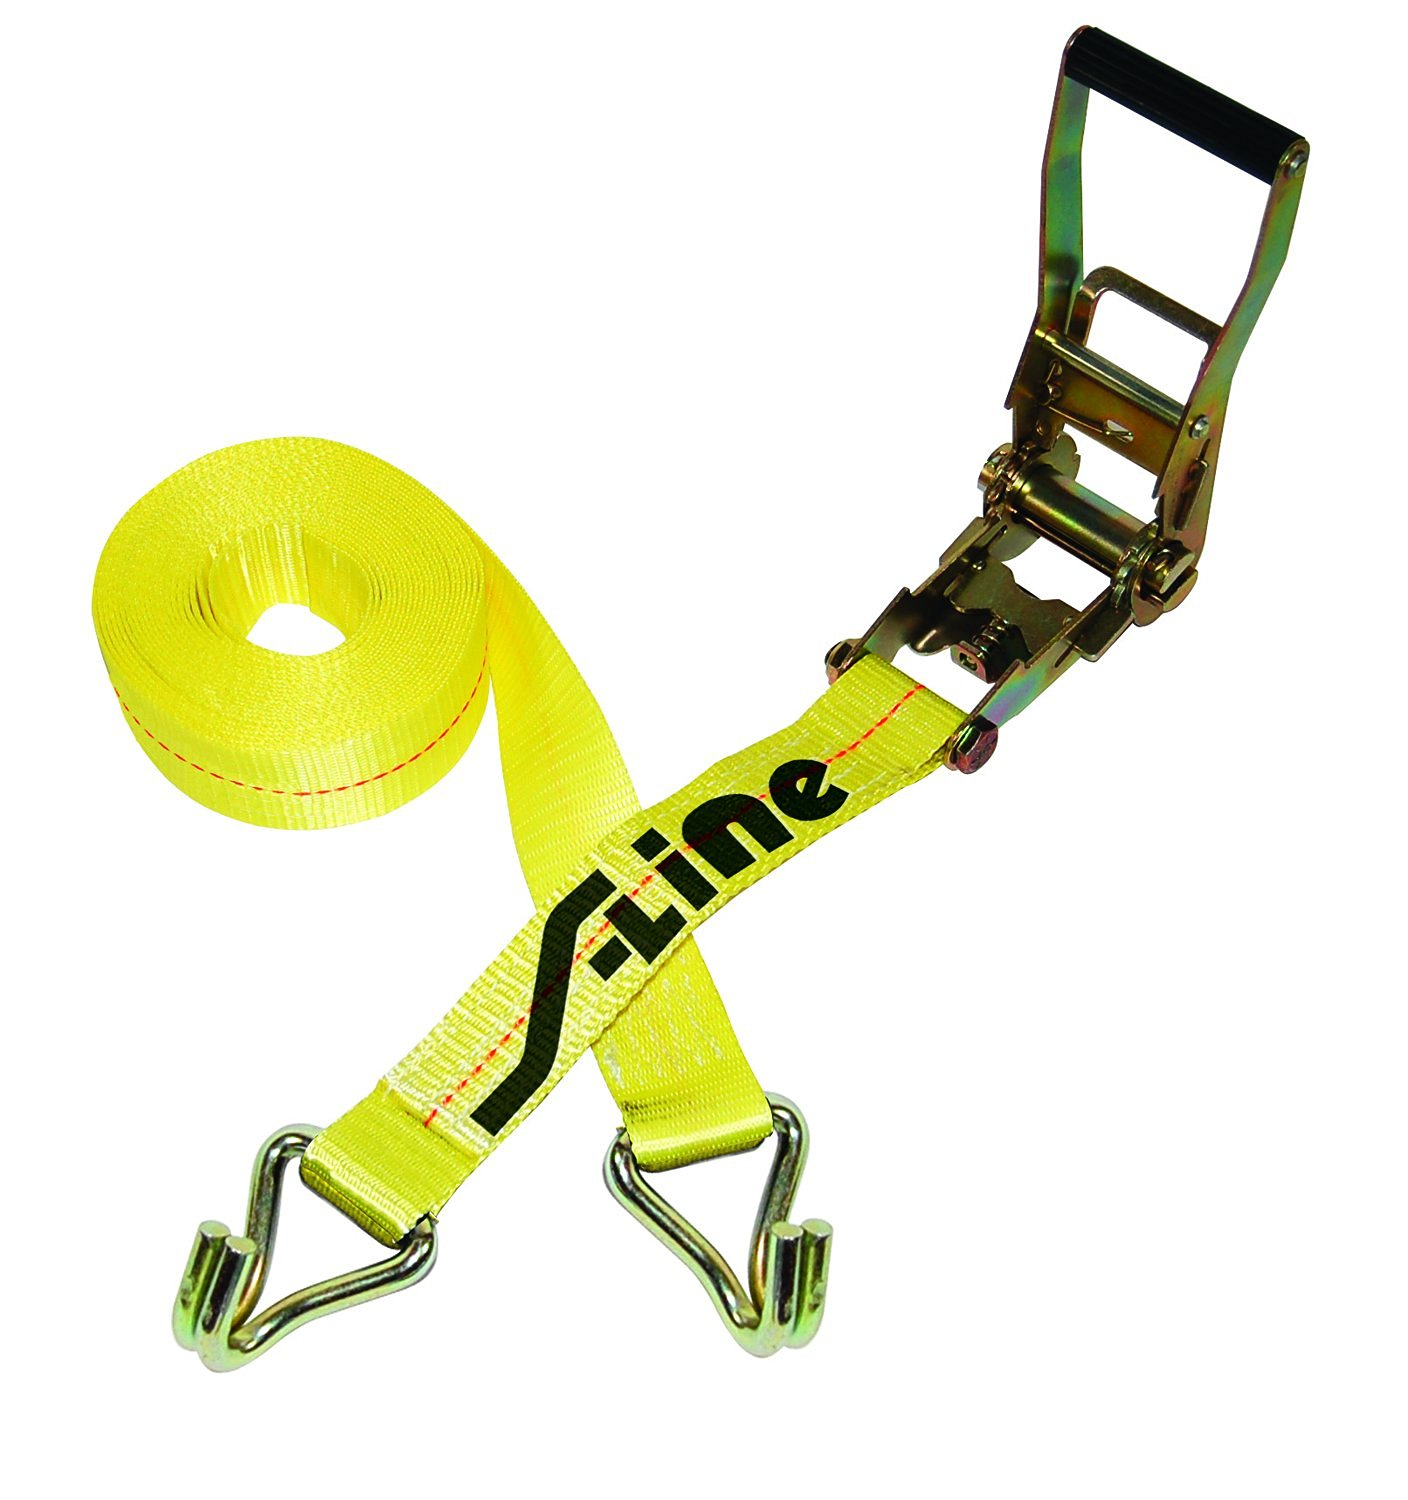 S-Line 557-15WHK Ratchet Strap Tie Down with Long Wide Handle and J-Hooks, 2-Inch by 15-Feet, 3,333-Pounds Working Load Limit